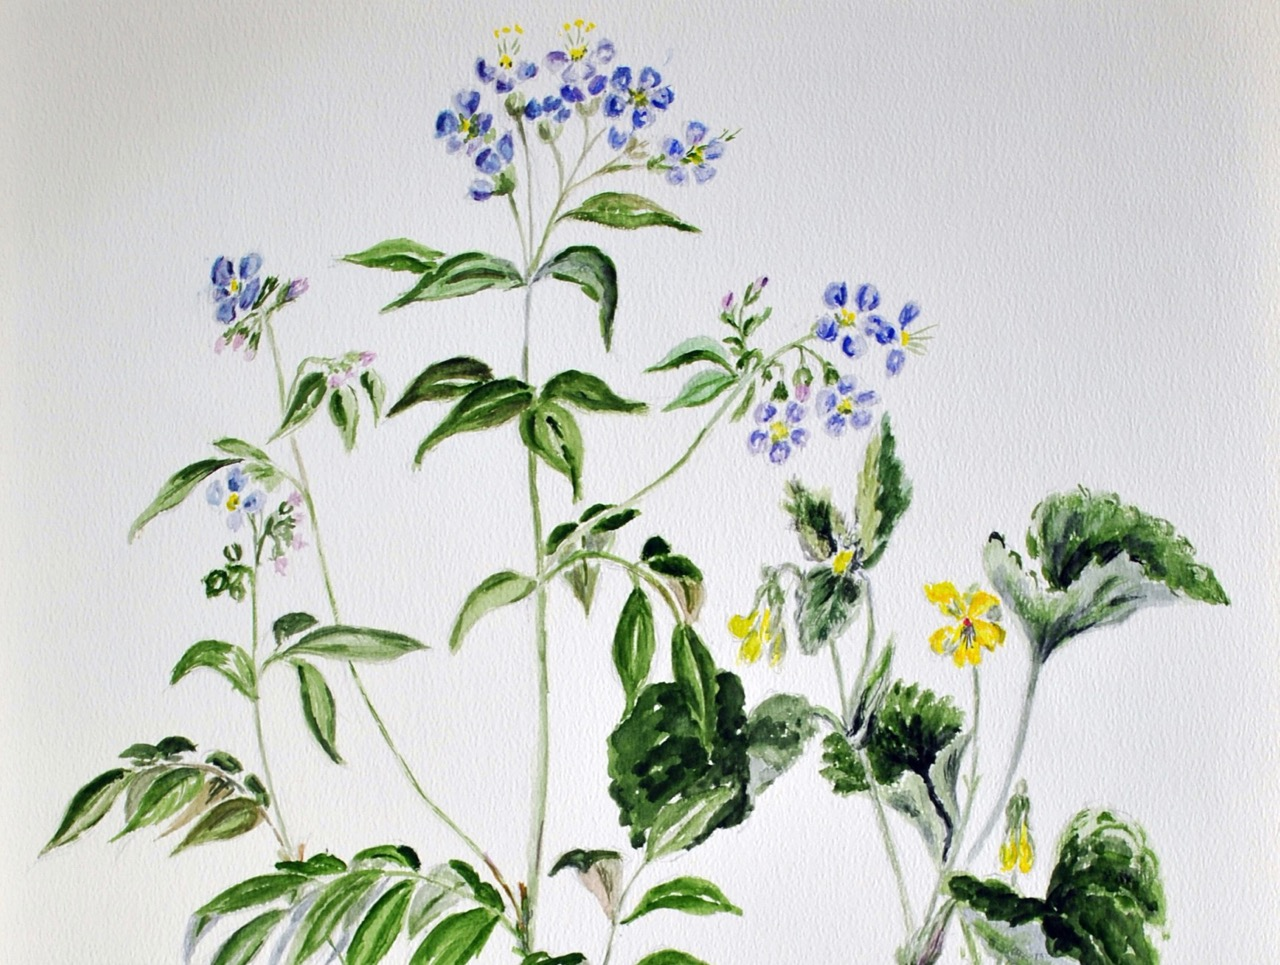 Watercolor wildflowers on display at CCAC in November